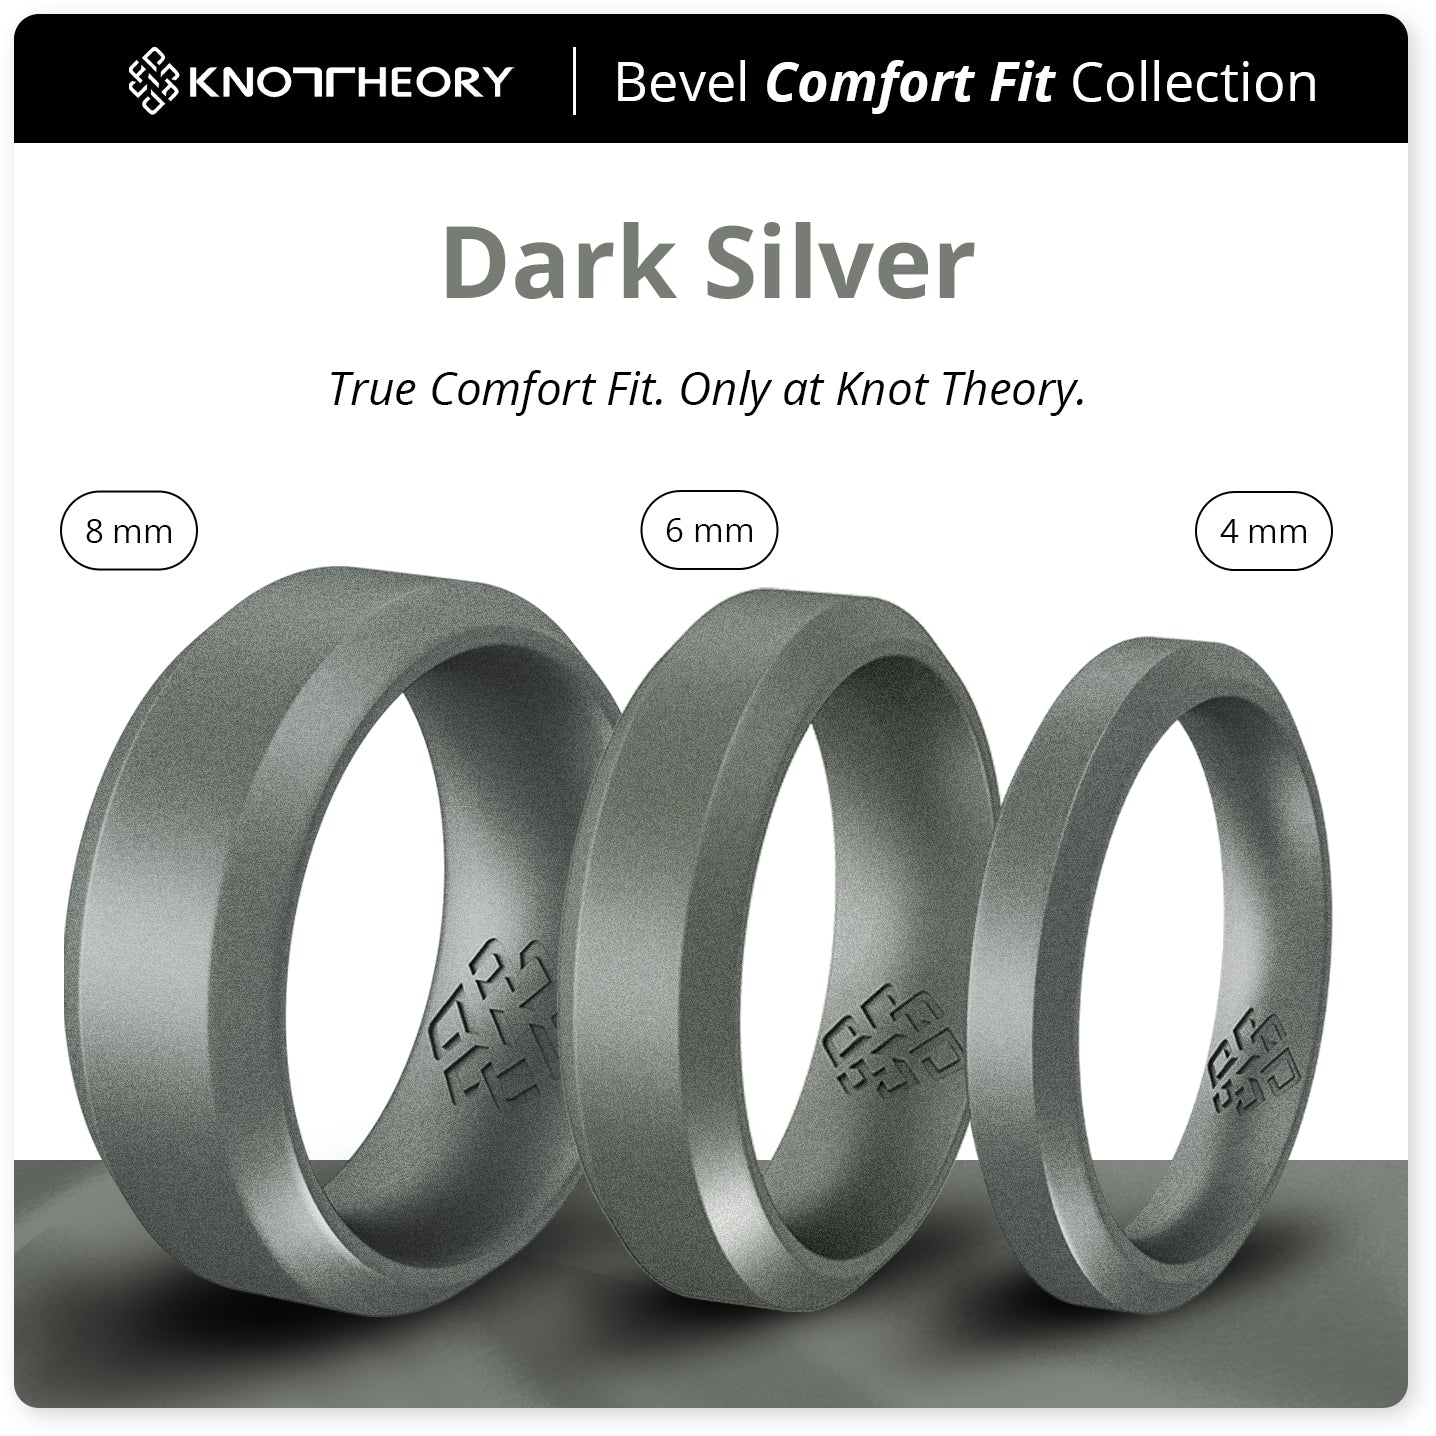 Dark Silver Bevel Comfort Fit Silicone Wedding Ring for Husband and Wife